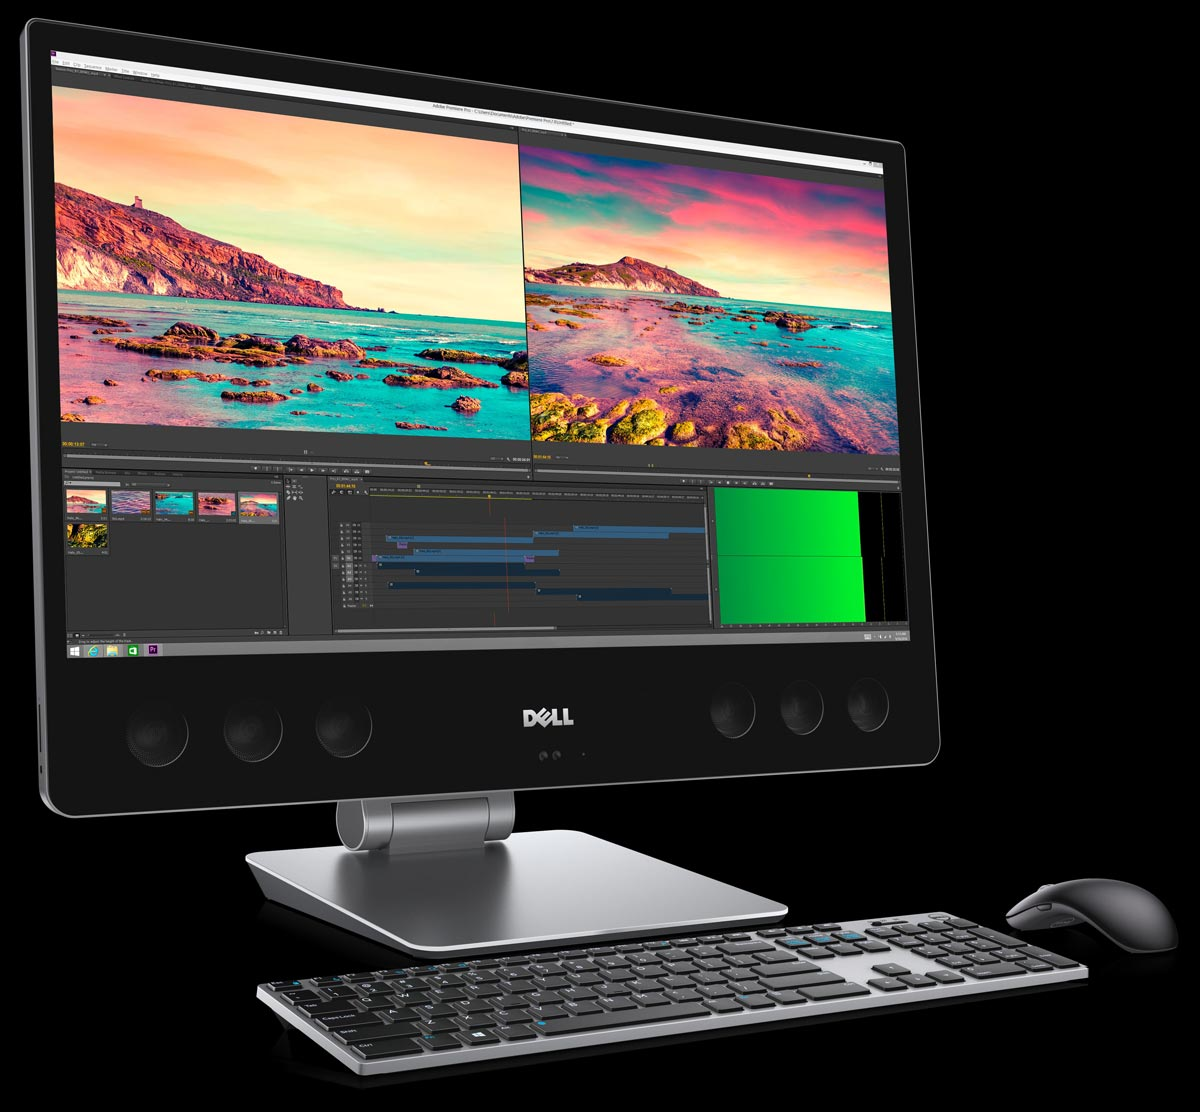 Dell-Precision-5720-AIO